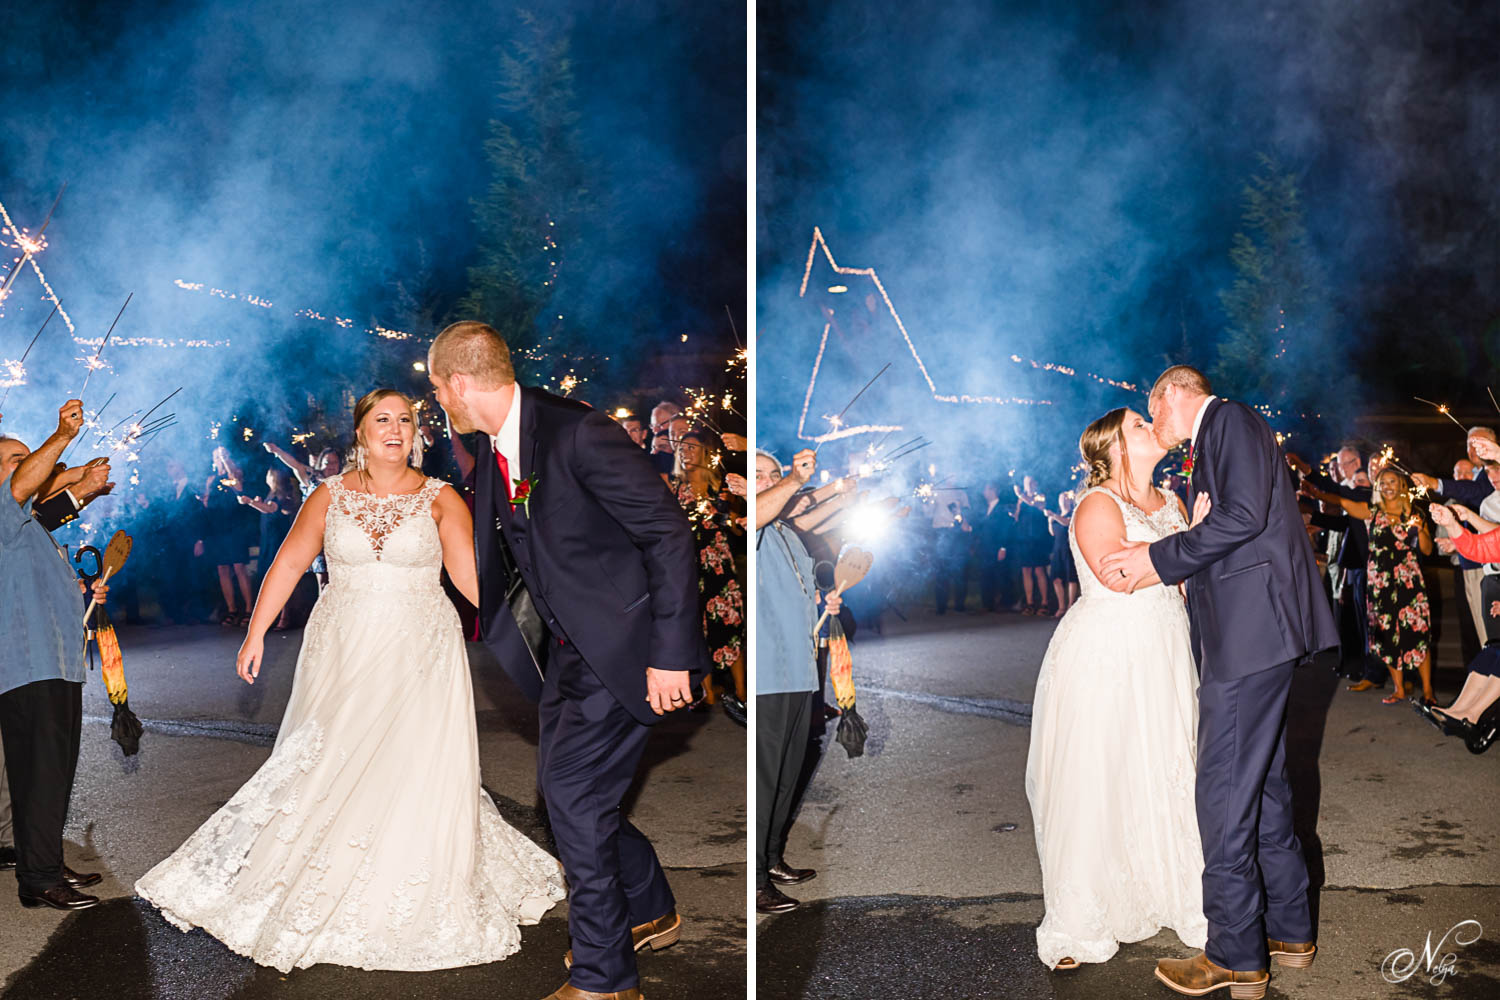 two photos of wedding couple exiting their wedding with guests holding smoky blue sparklers